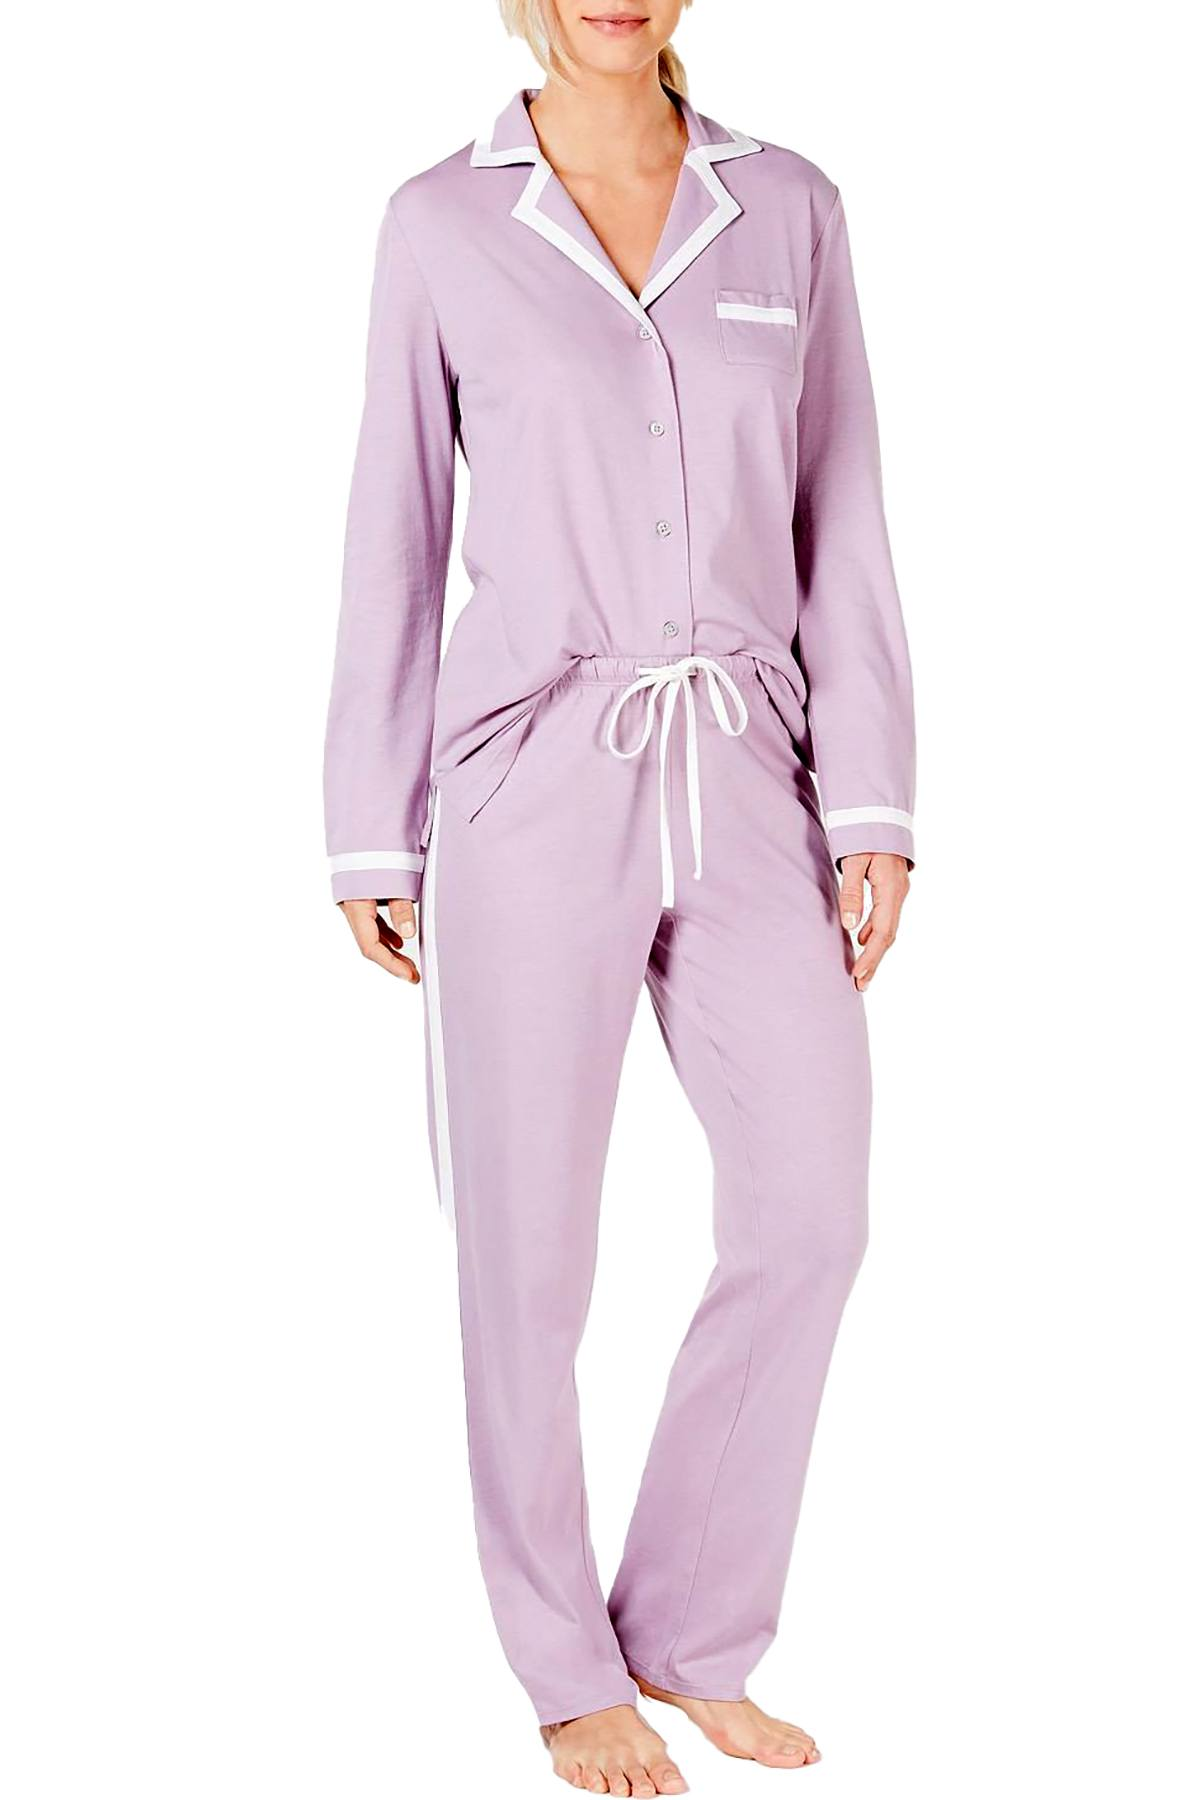 Alfani Pima Cotton Long Sleeve Top / Pant PJ Set in Lavender Glow